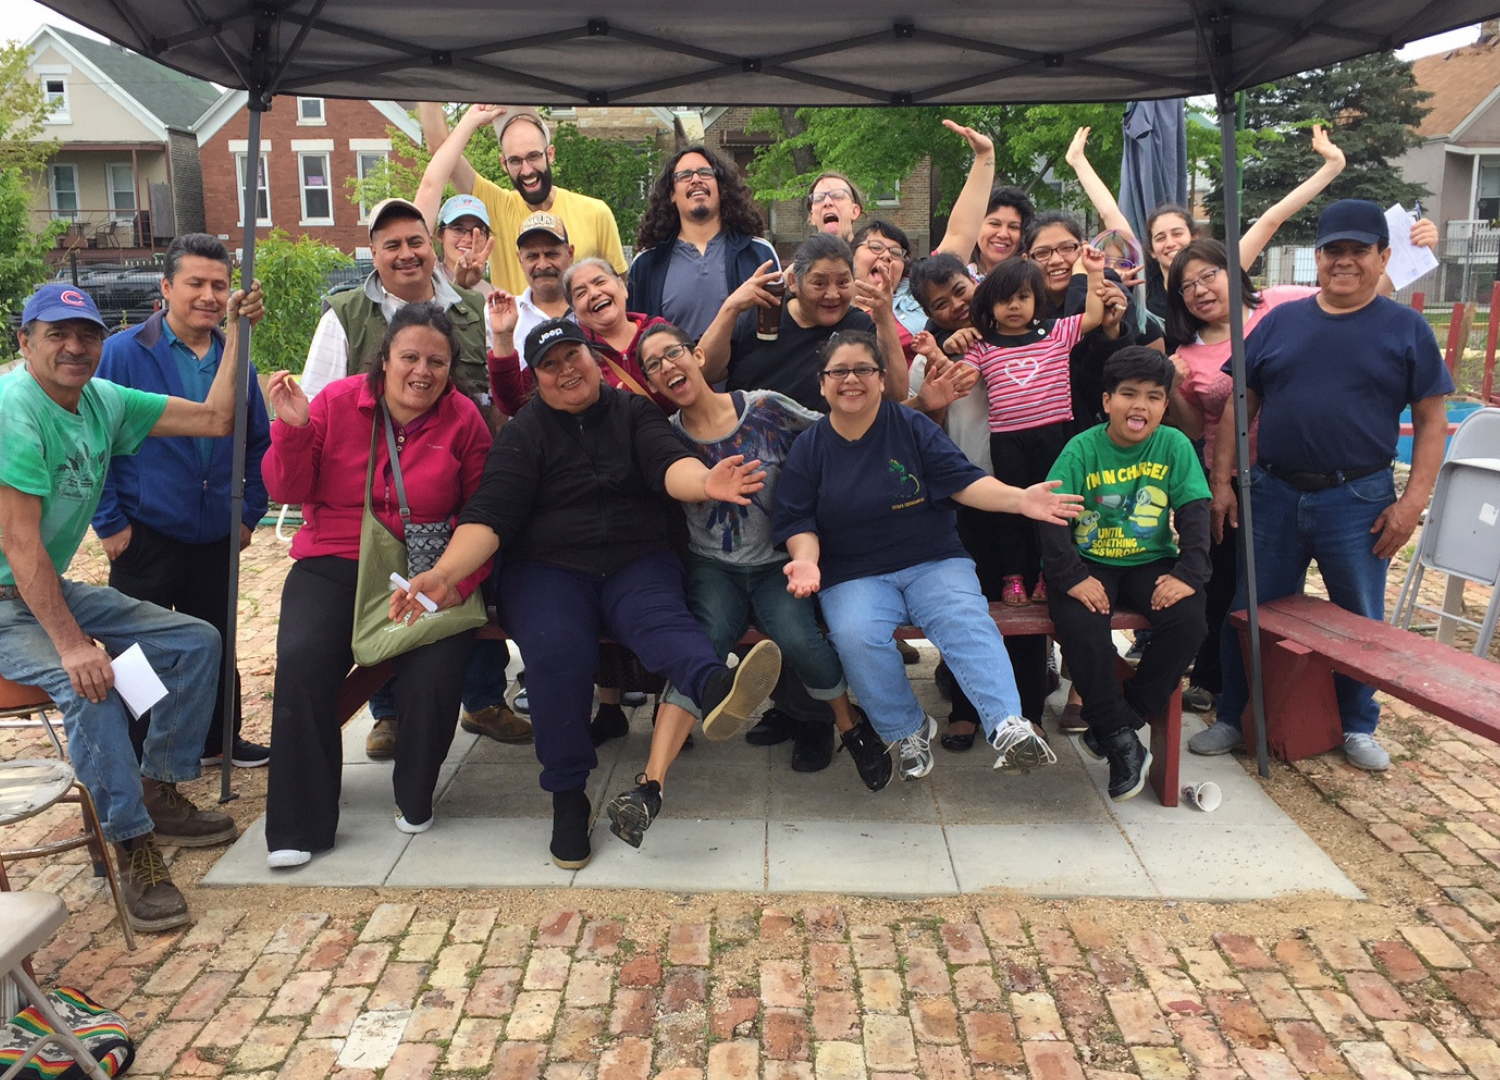 Little Village Environmental Justice Organization's Semillas de Justicia Community Garden